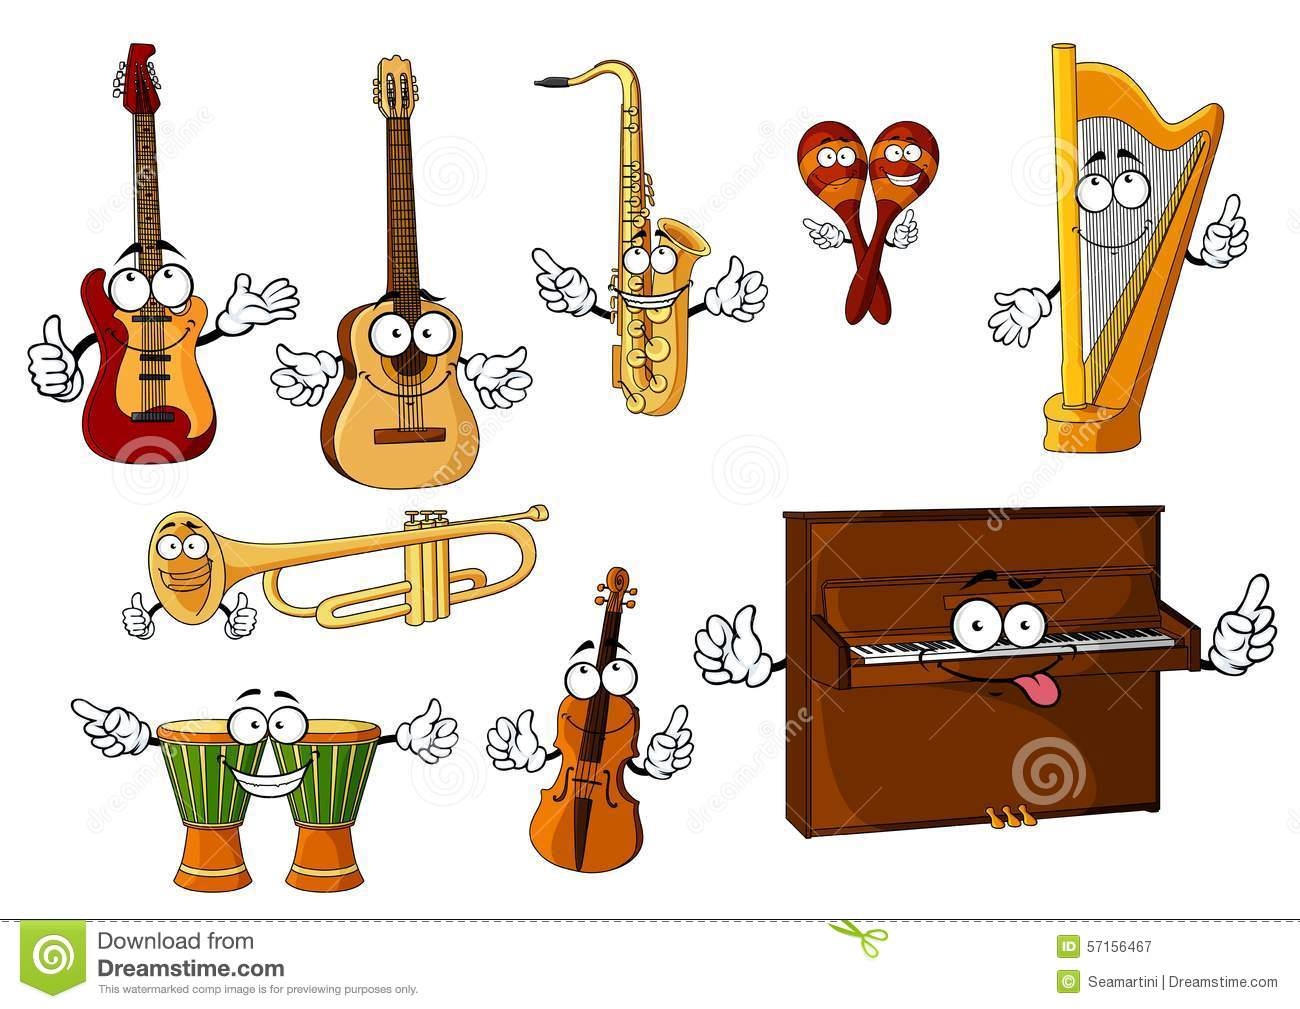 classic cartoon musical instruments characters stock vector illustration of element musical. Black Bedroom Furniture Sets. Home Design Ideas